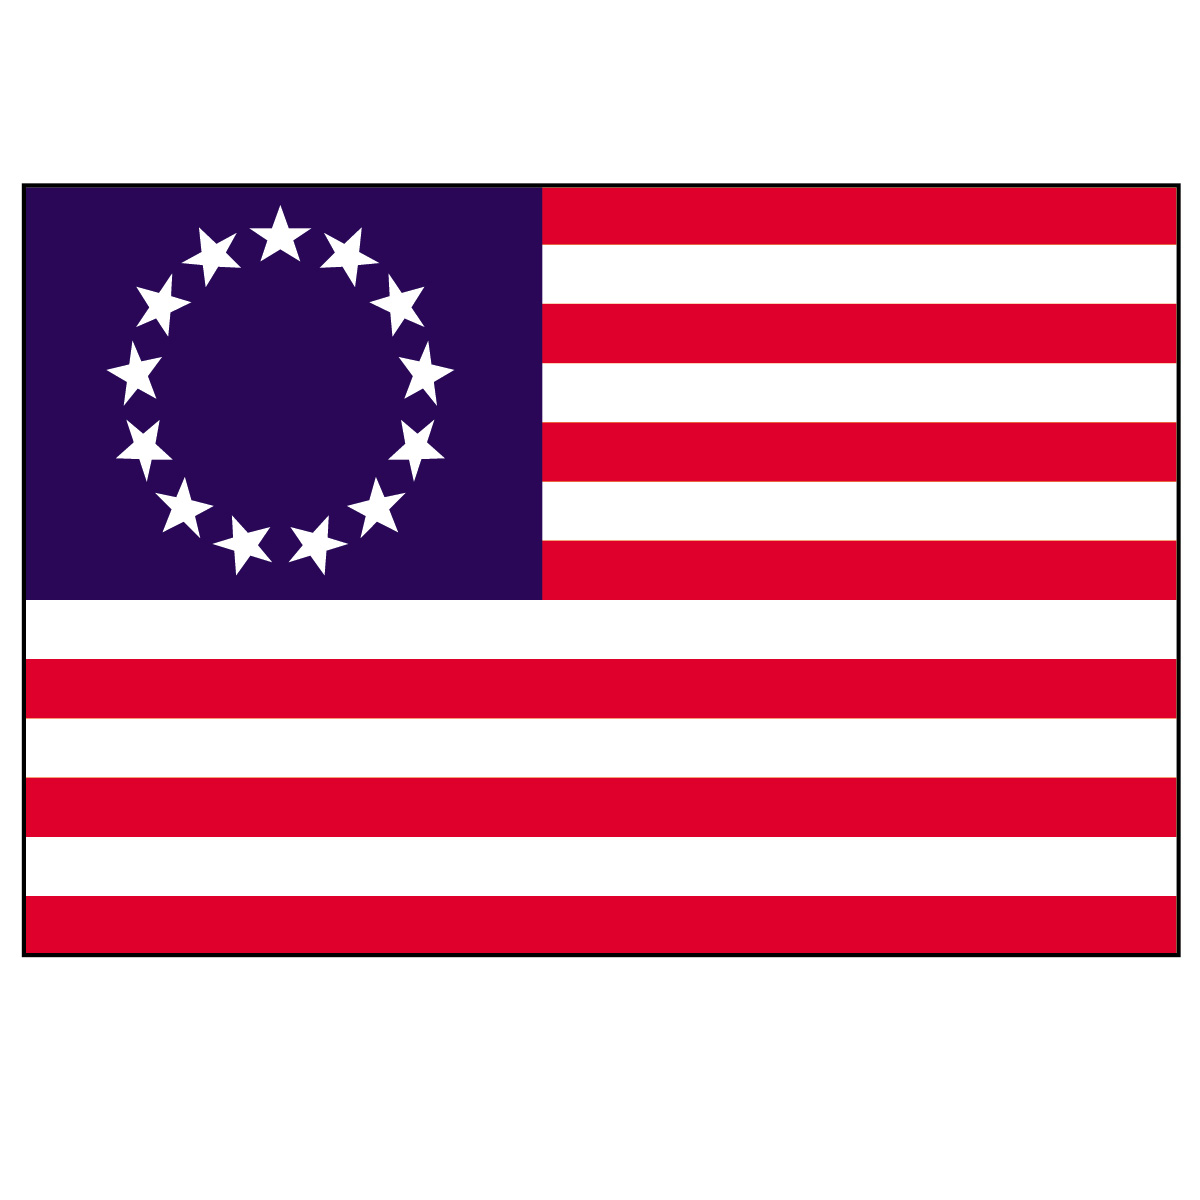 Clipartfest colonies resolution x. Colony us flag clipart